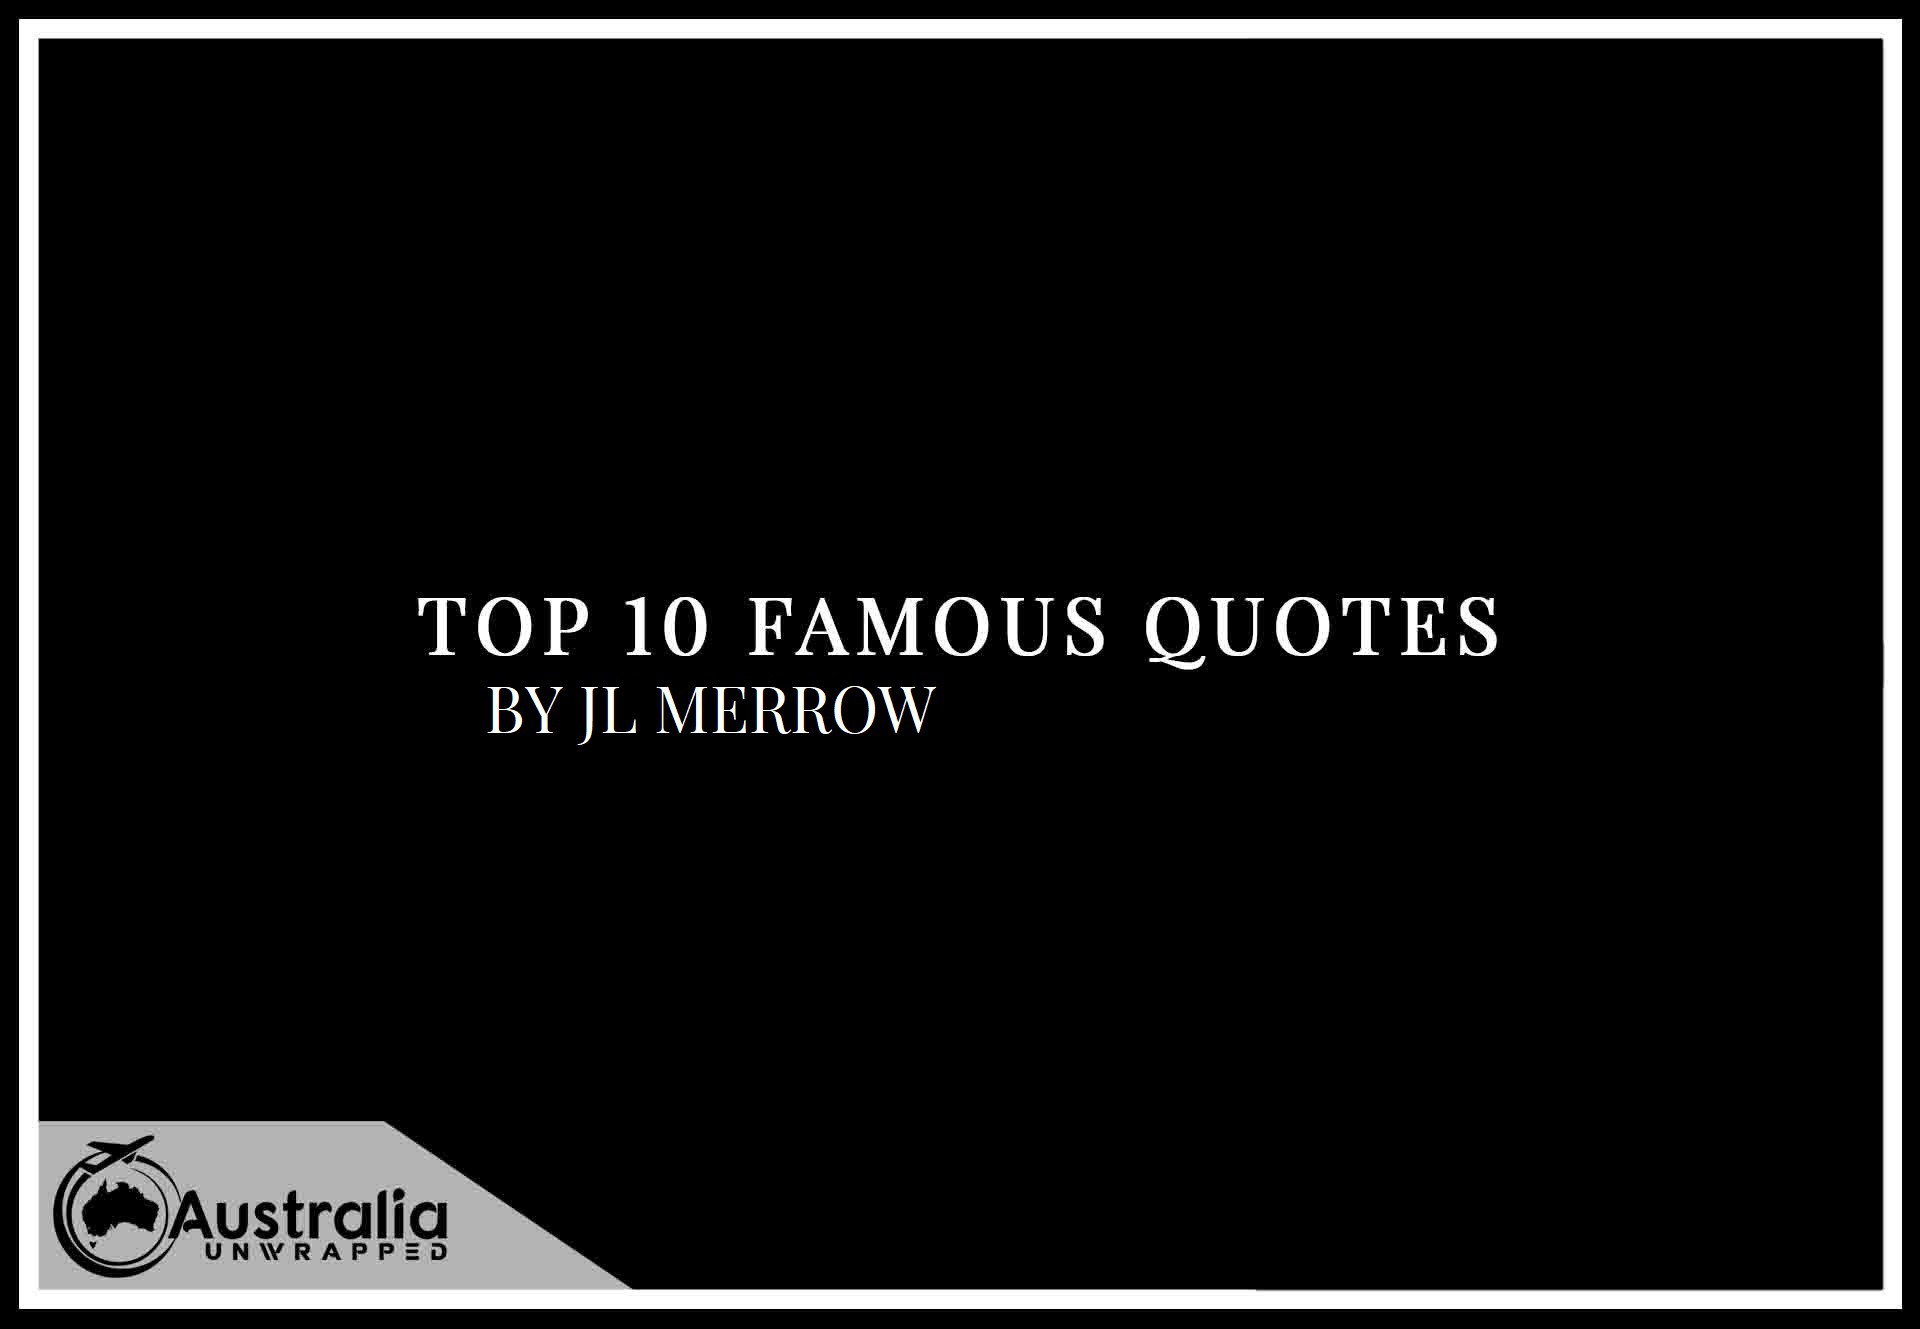 Top 10 Famous Quotes by Author J.L. Merrow